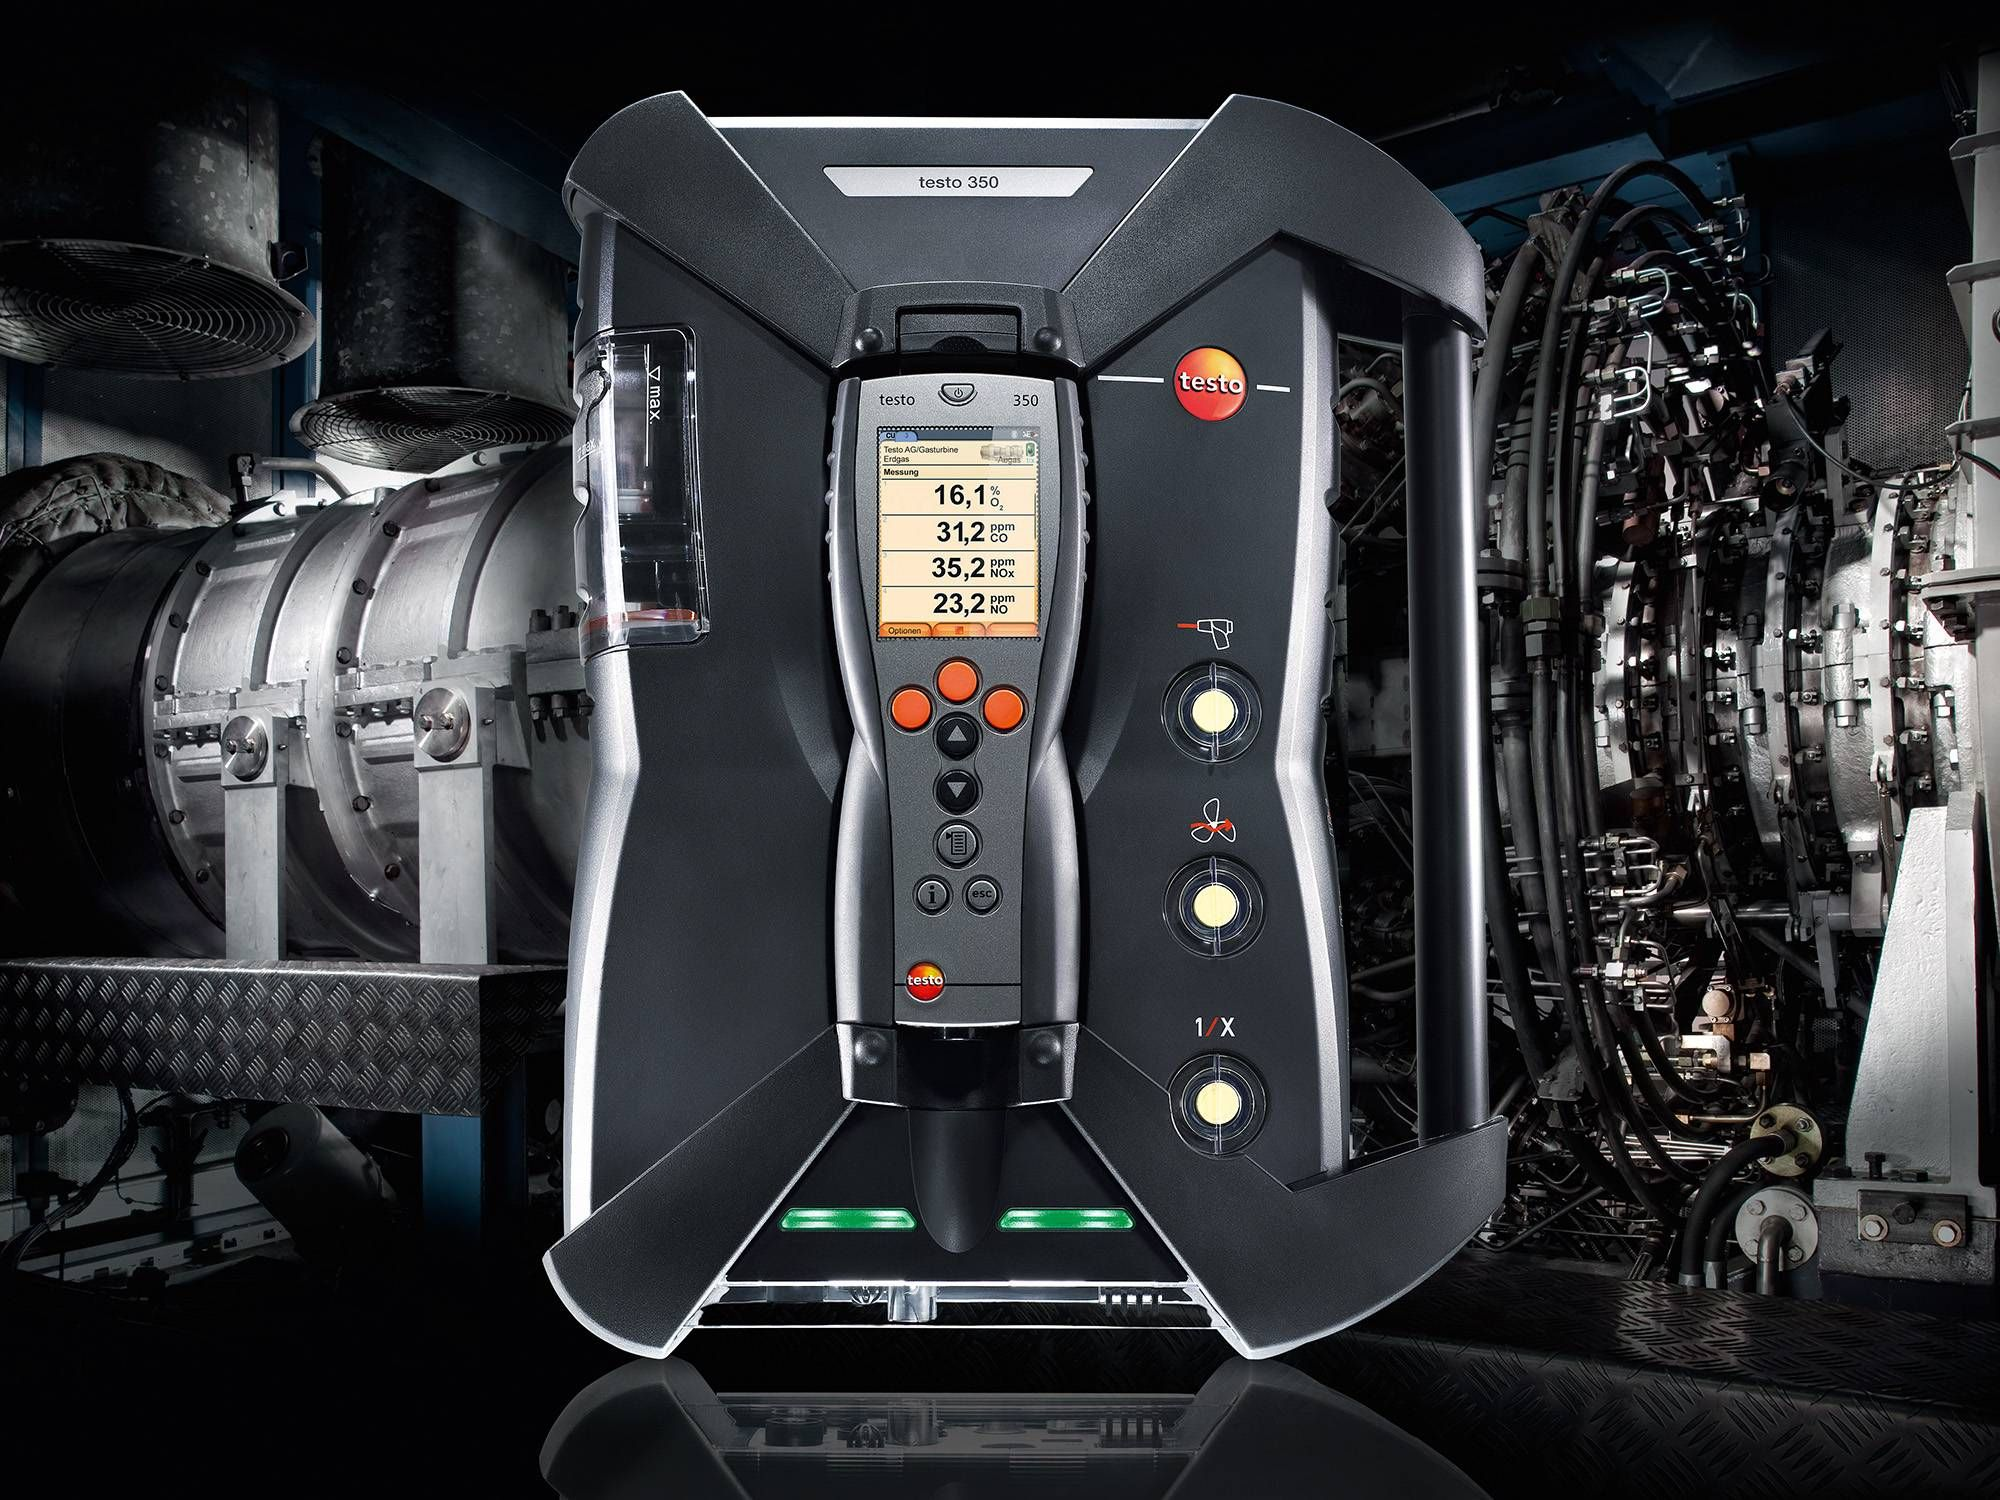 Testo CHP 350 for emission measuring